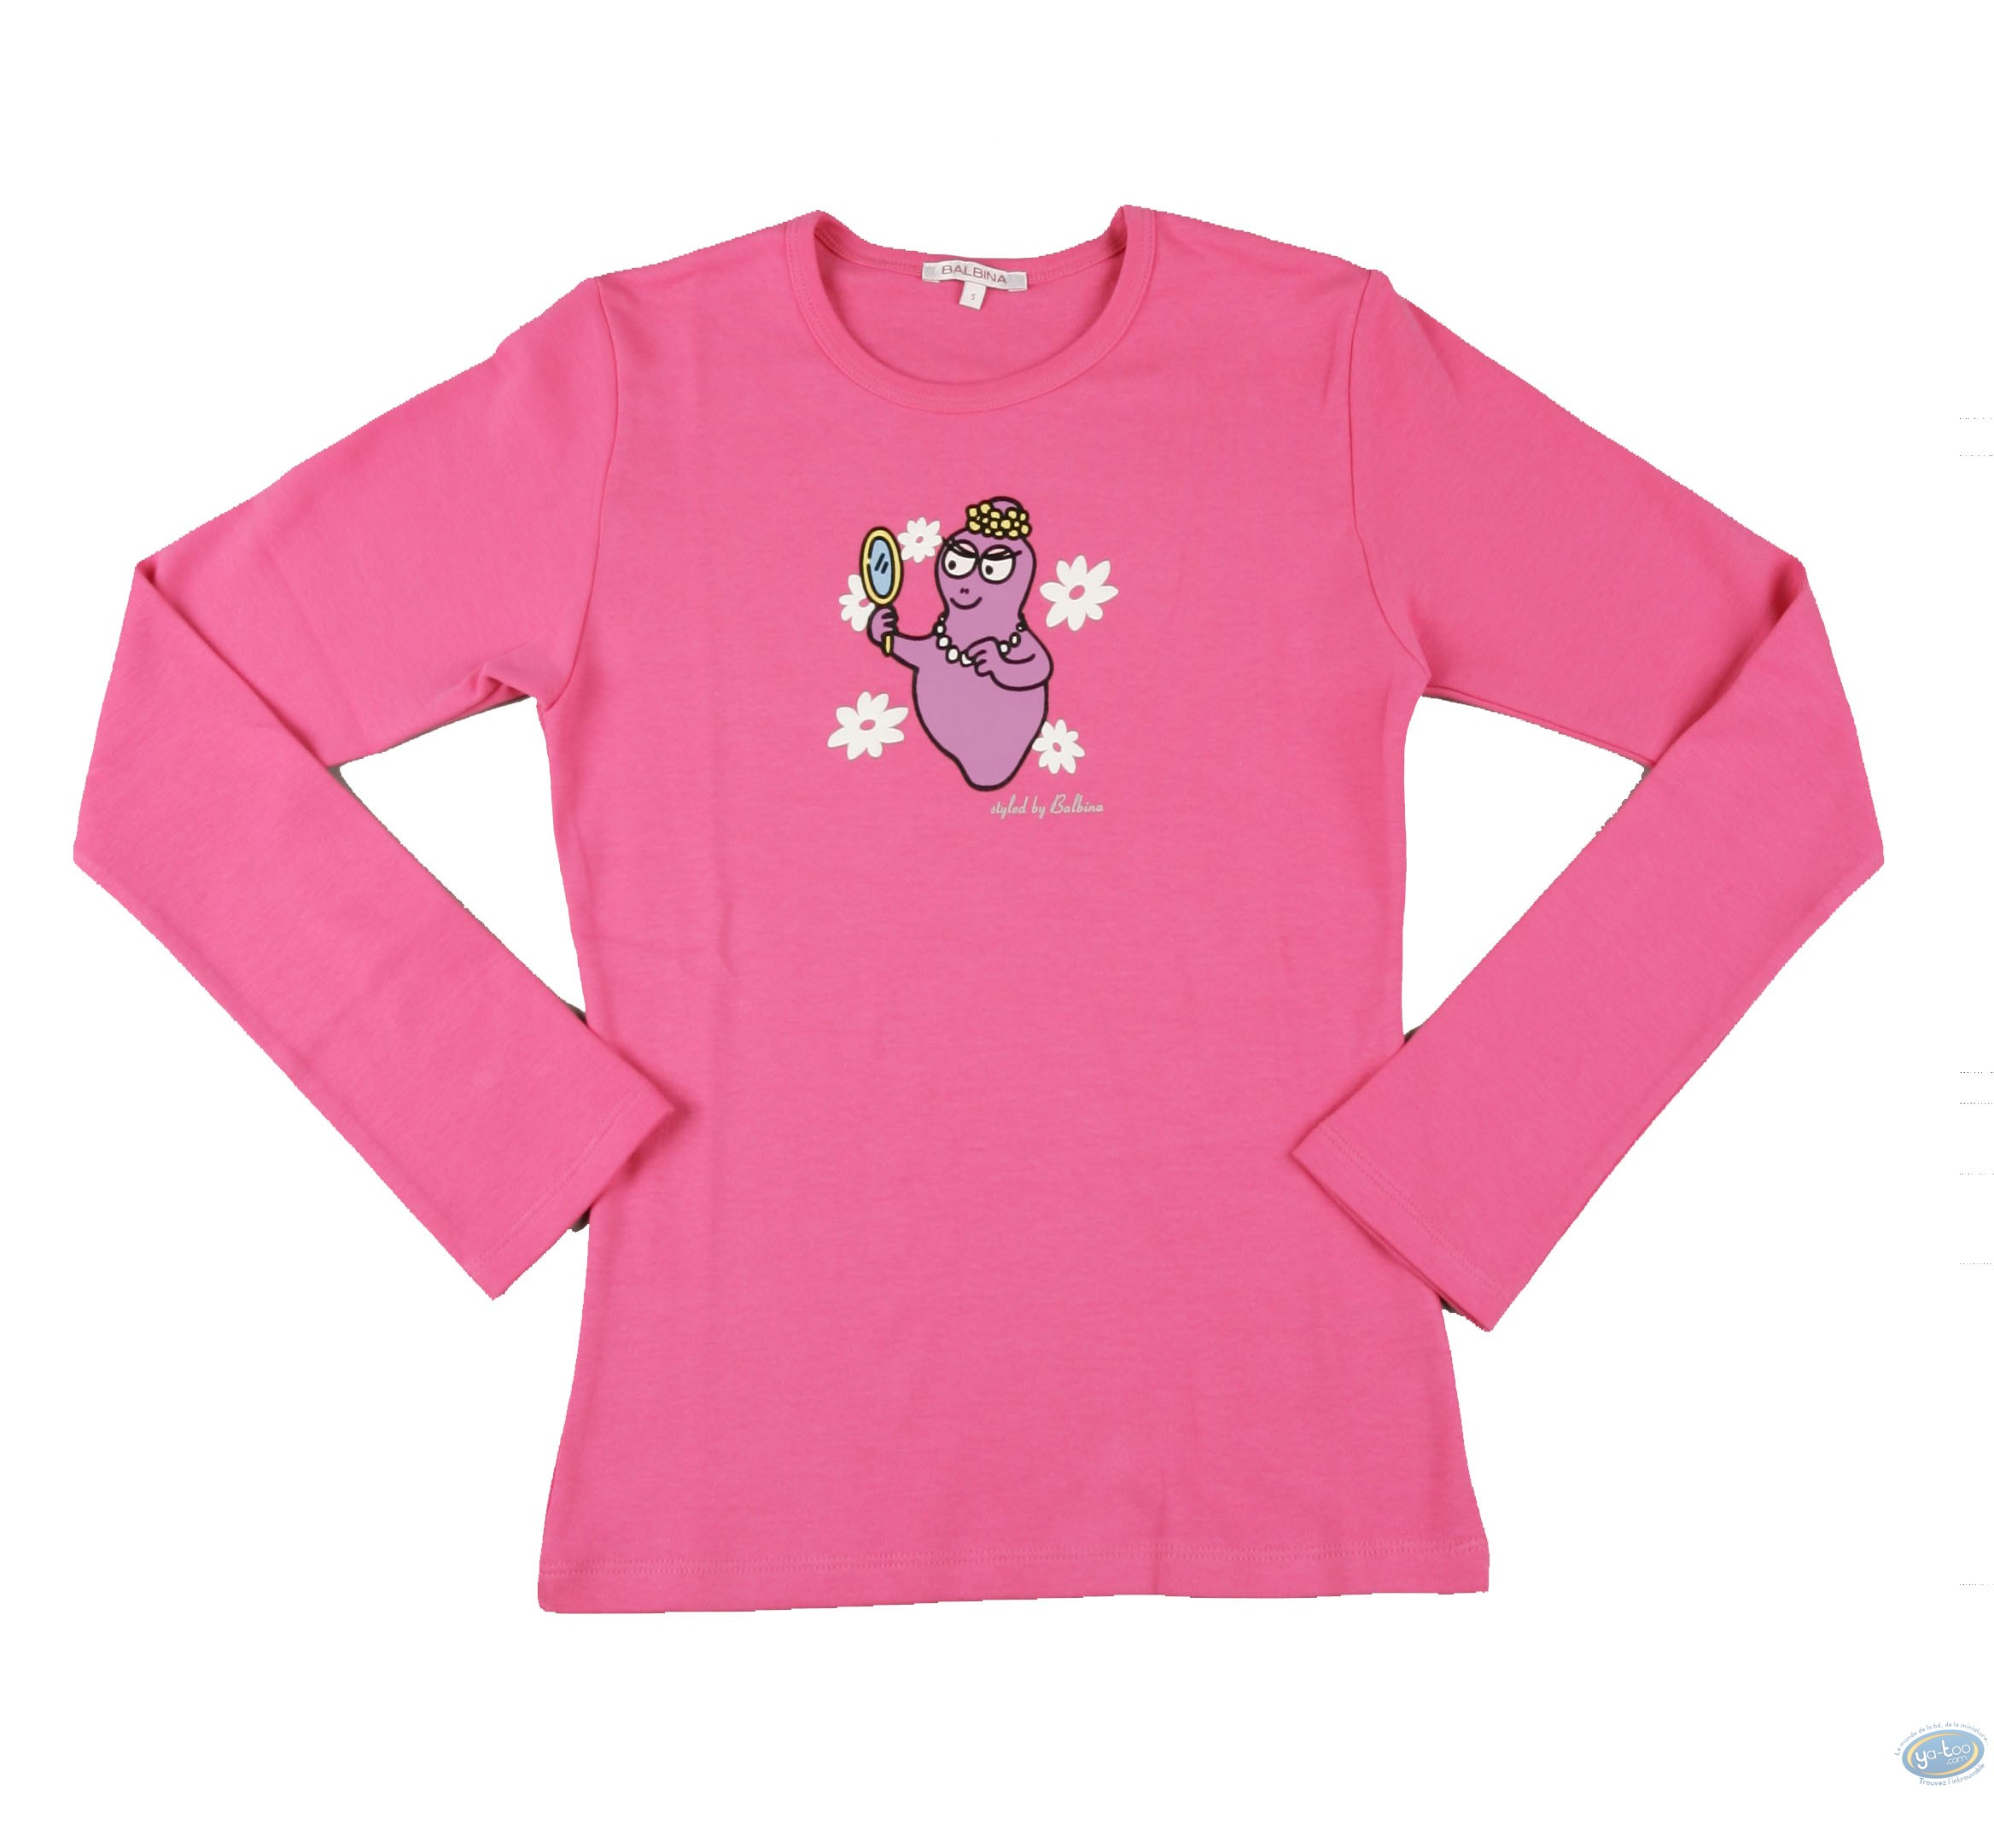 Clothes, Barbapapa : T-shirt long-sleeve pink Barbapapa: size S, mirror